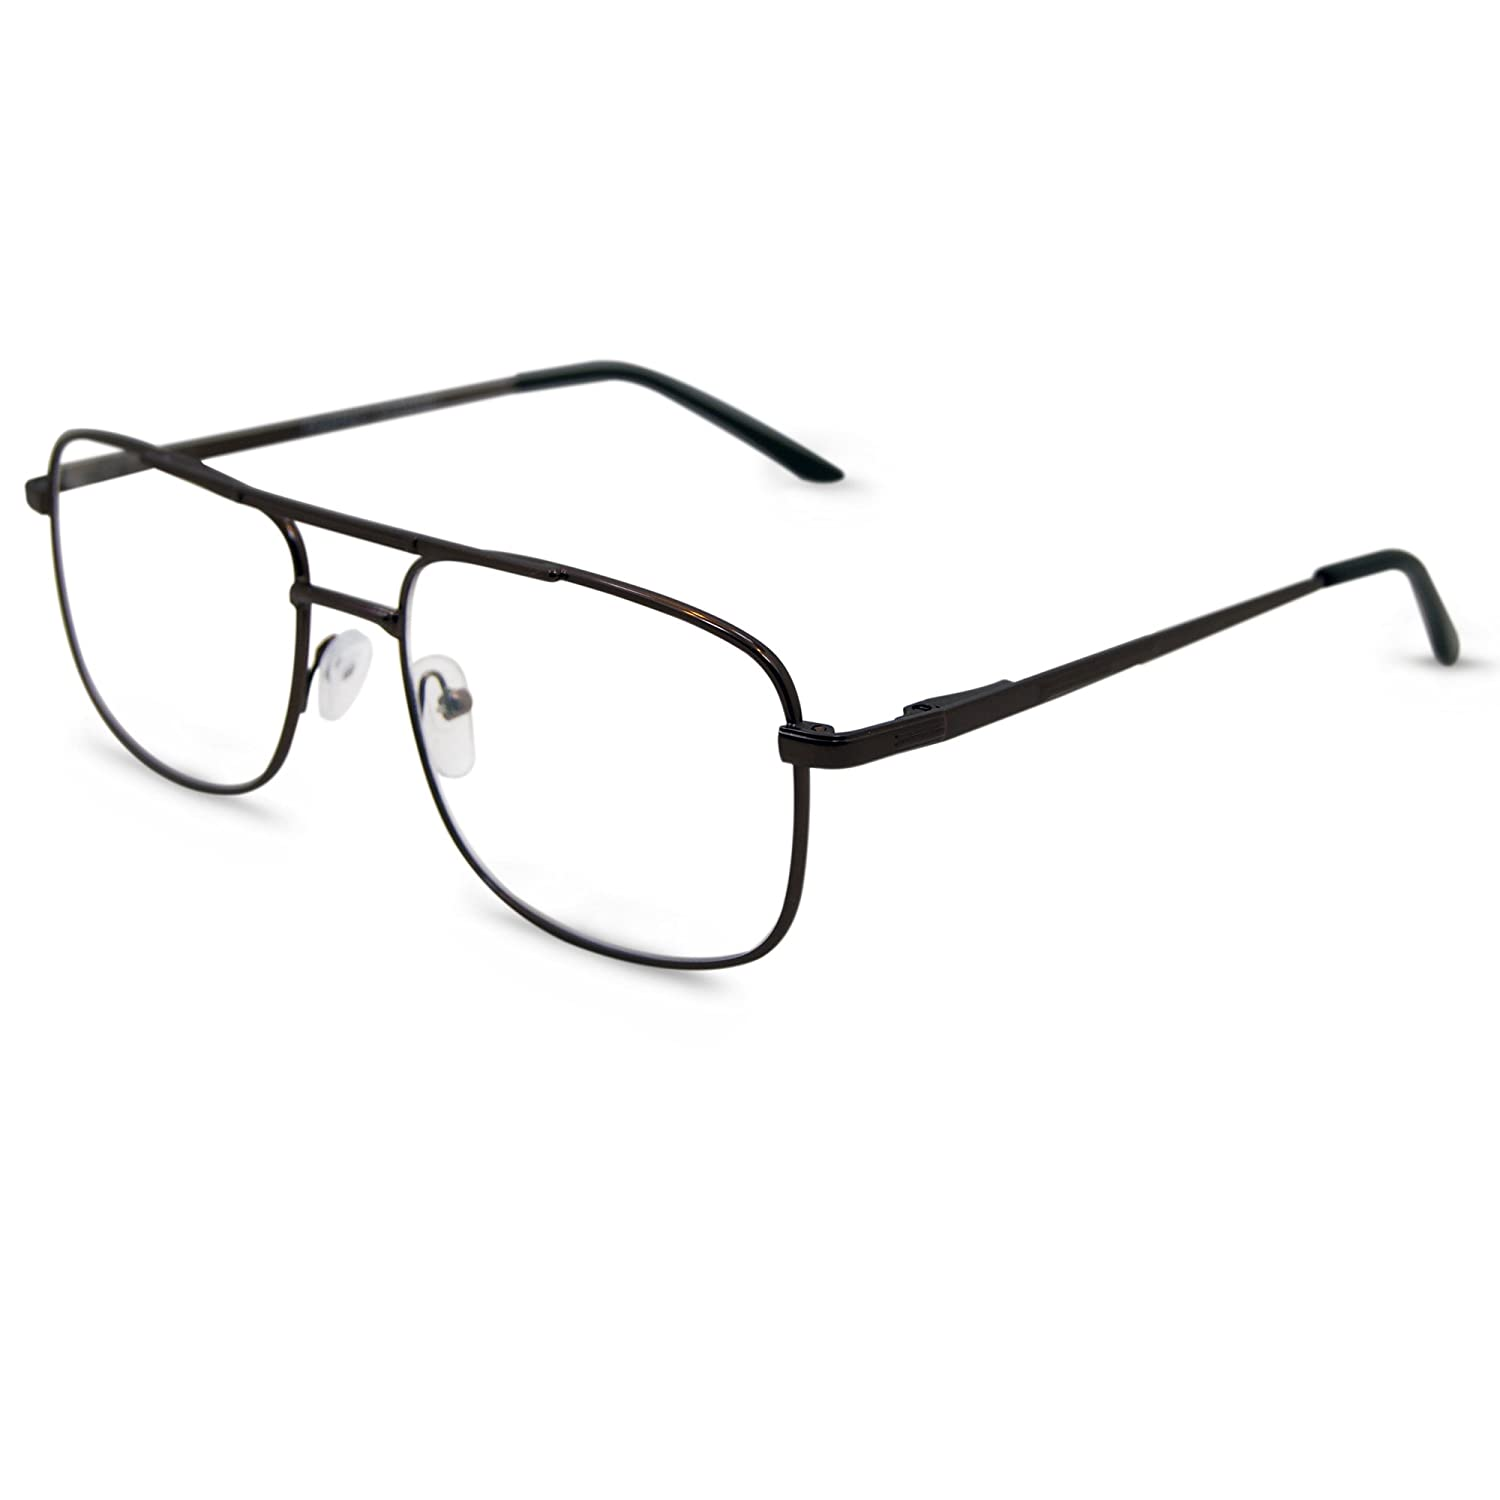 34d92b6bd9 Amazon.com  In Style Eyes Savvy Progressive BiFocal Glasses Copper 1.50   Clothing